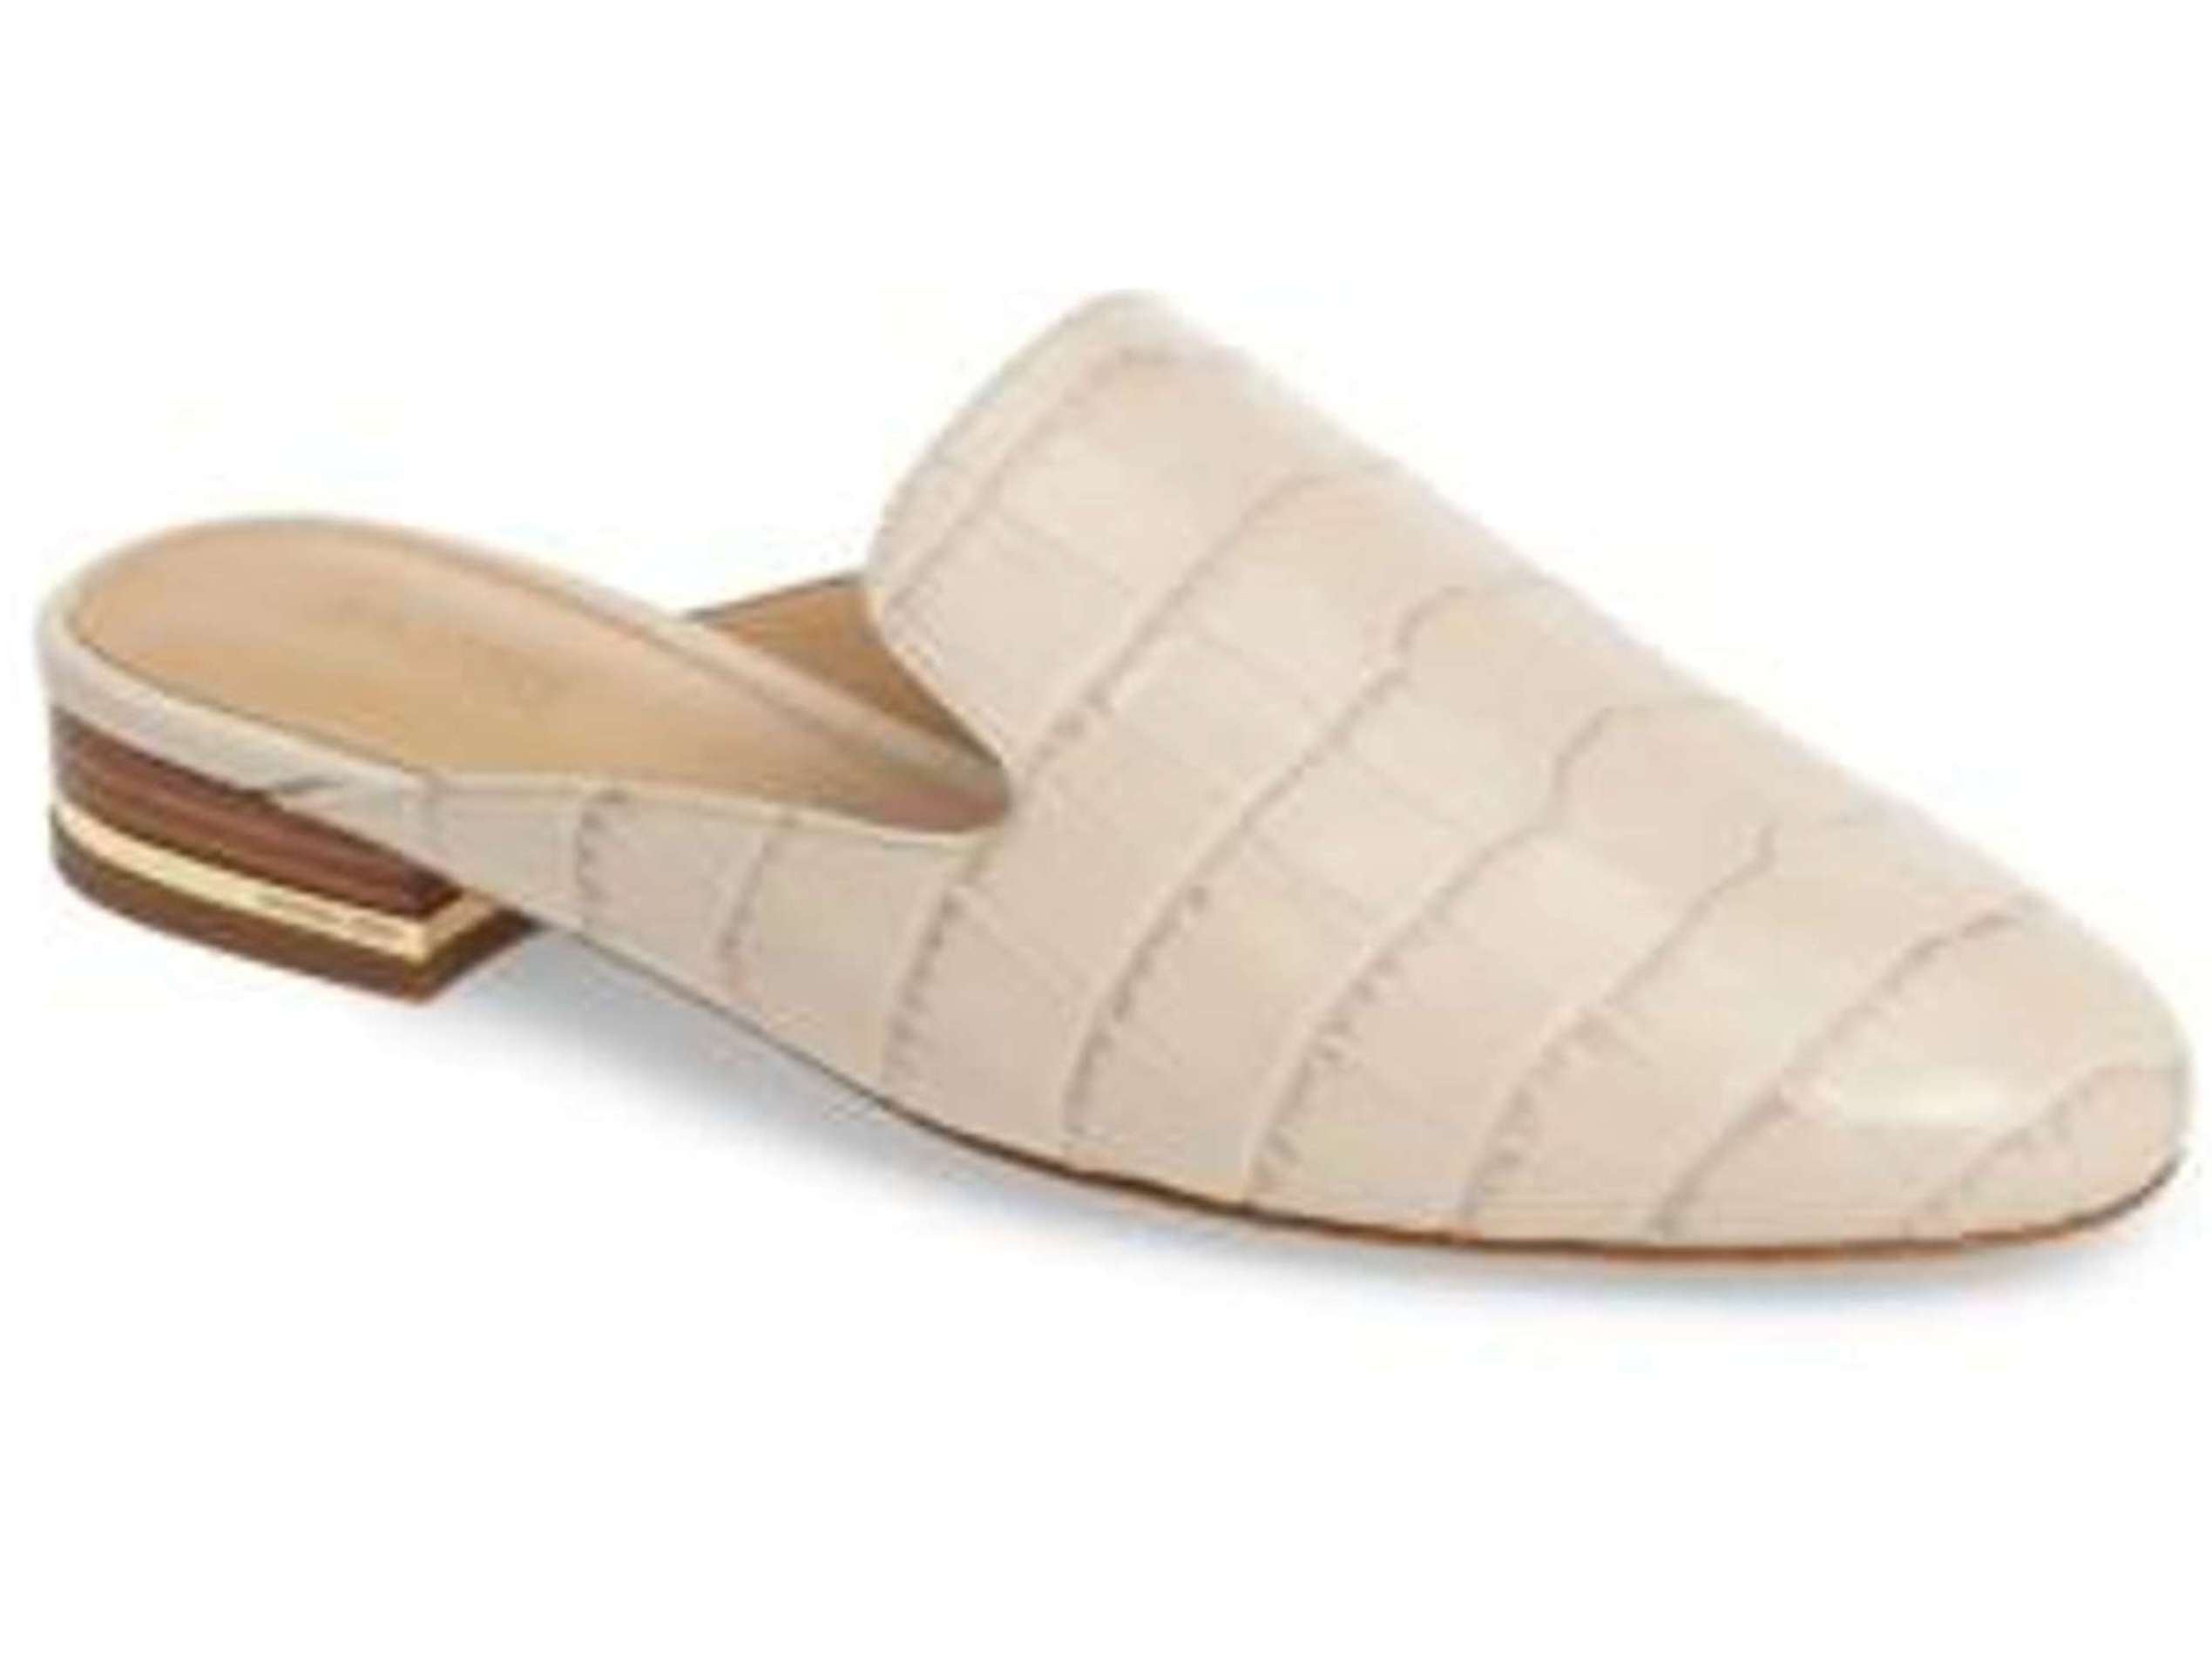 fdddffb2d3c3 Michael Michael Kors Womens Natasha Leather Almond Toe Casual